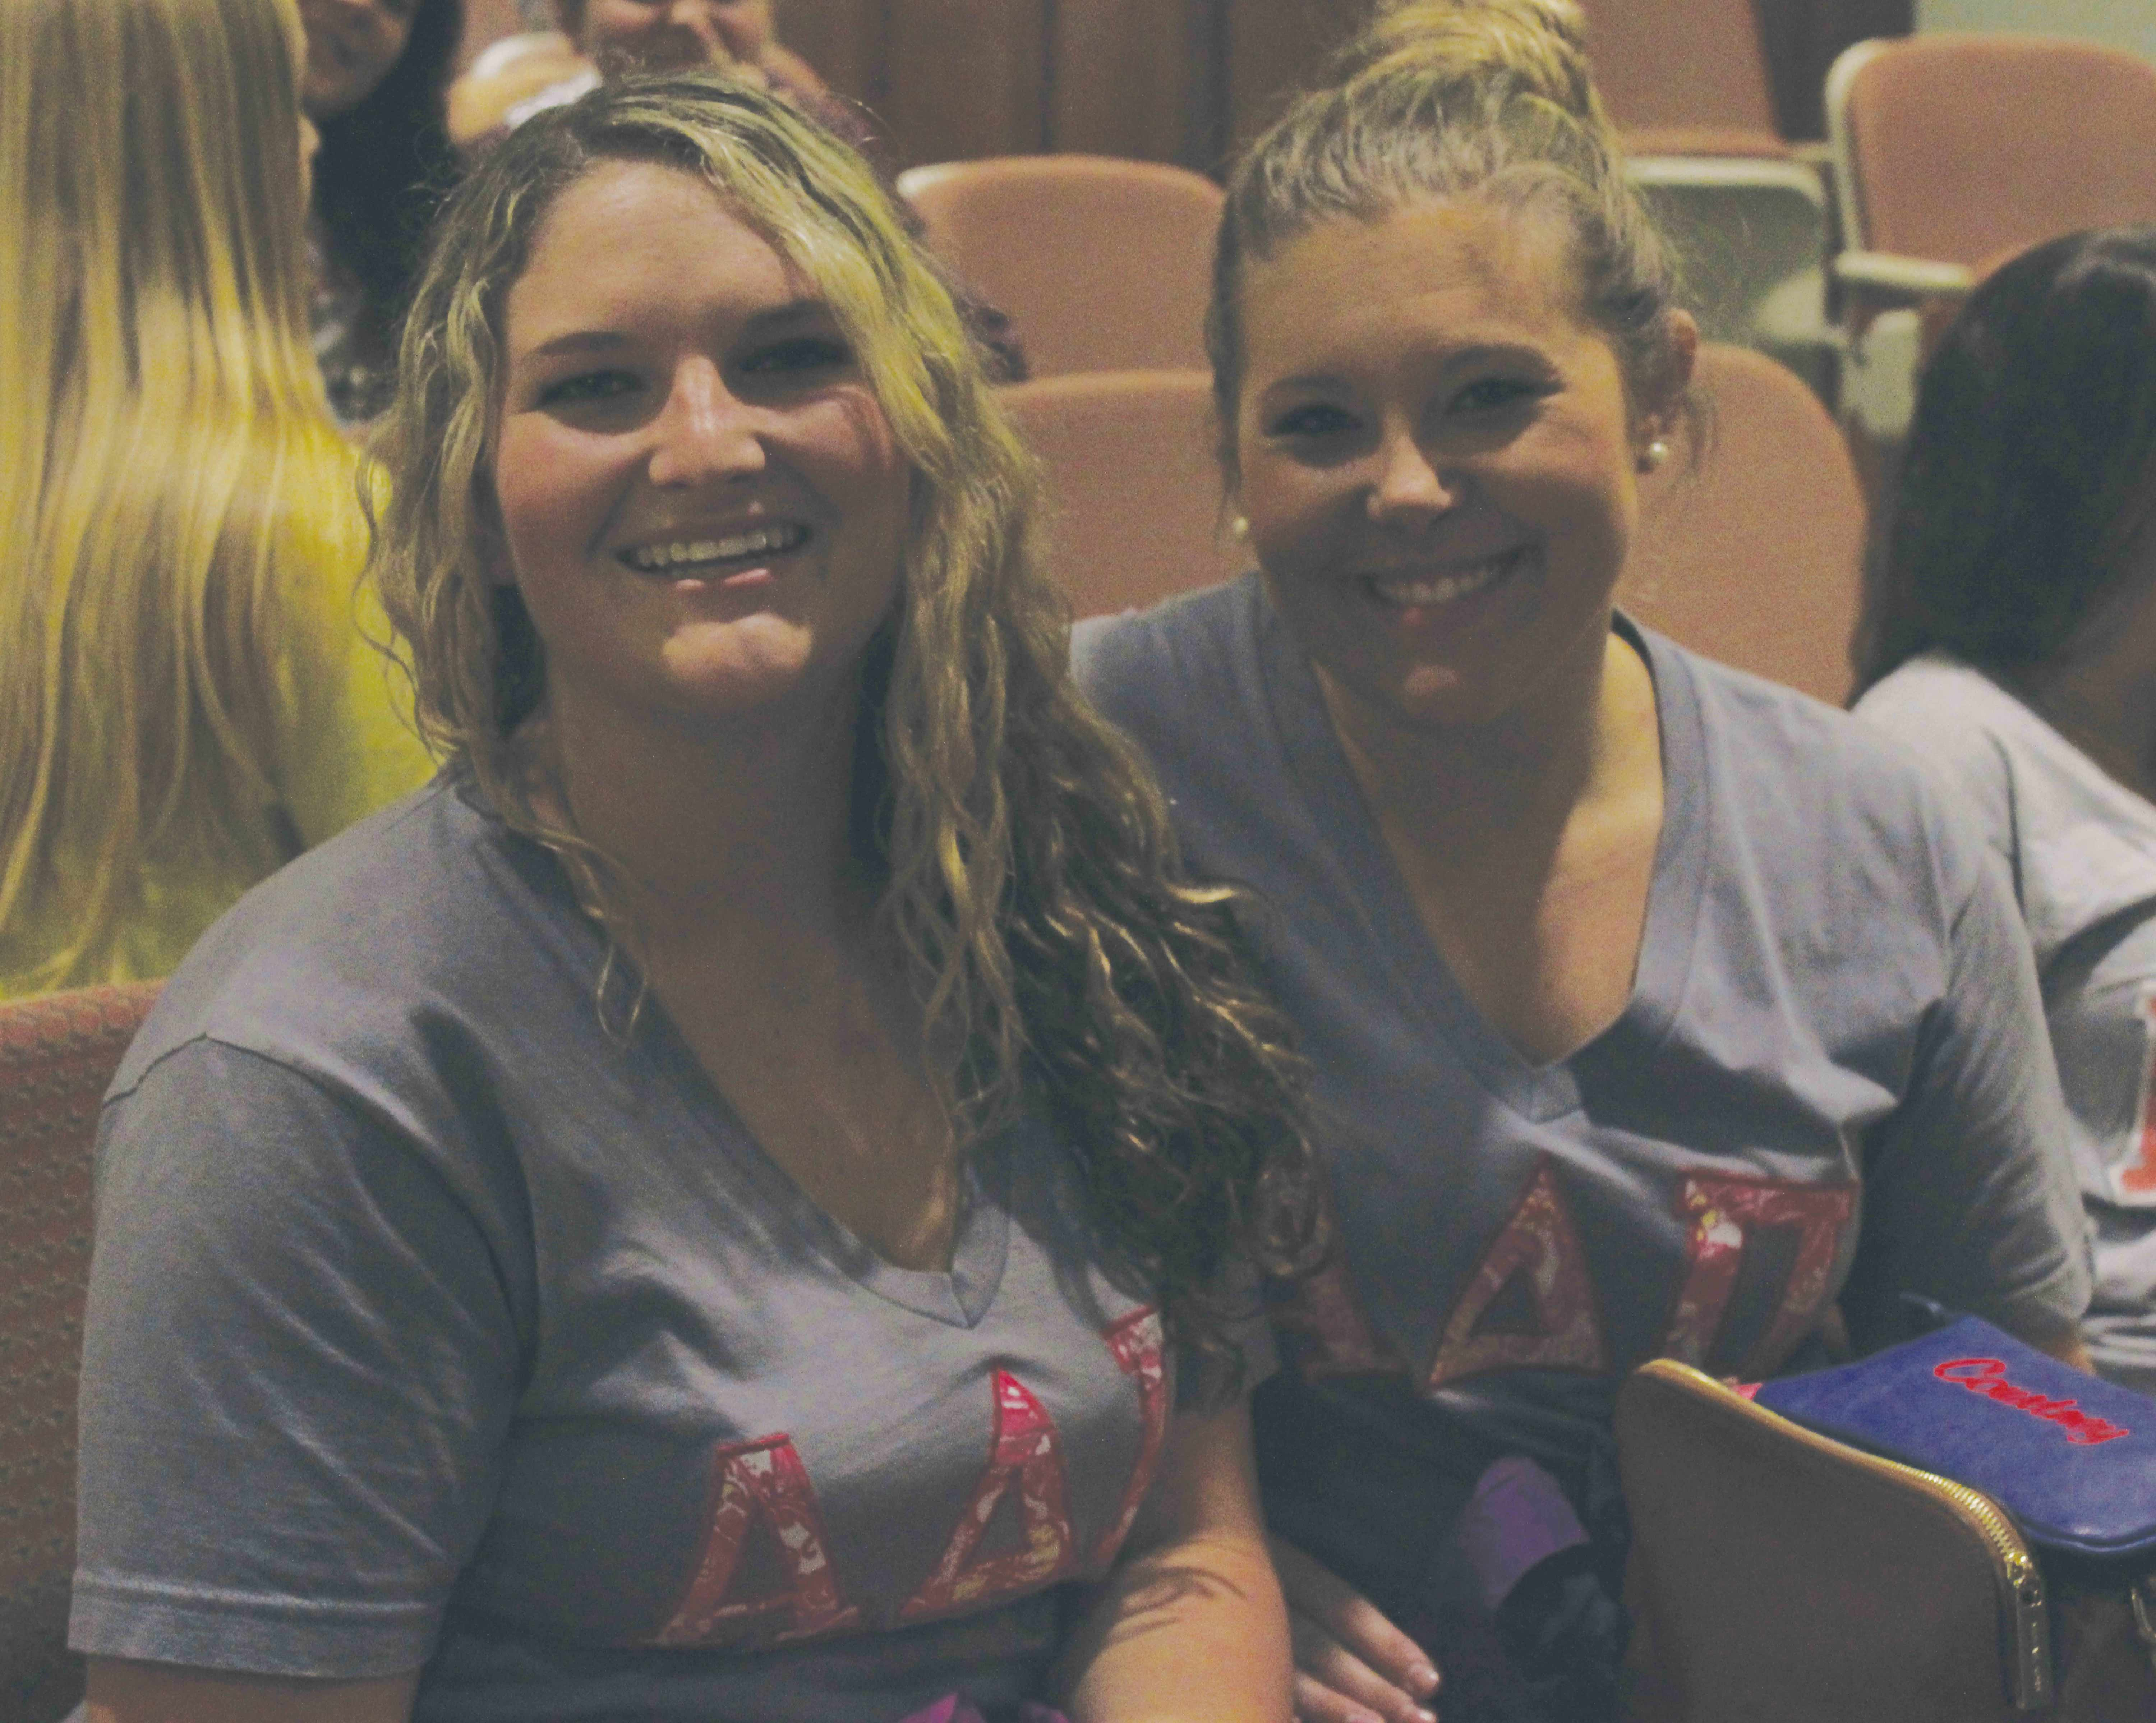 ADPi members Courtney Canipe and Marley Young attend the Diamond Development program to learn about life skills.